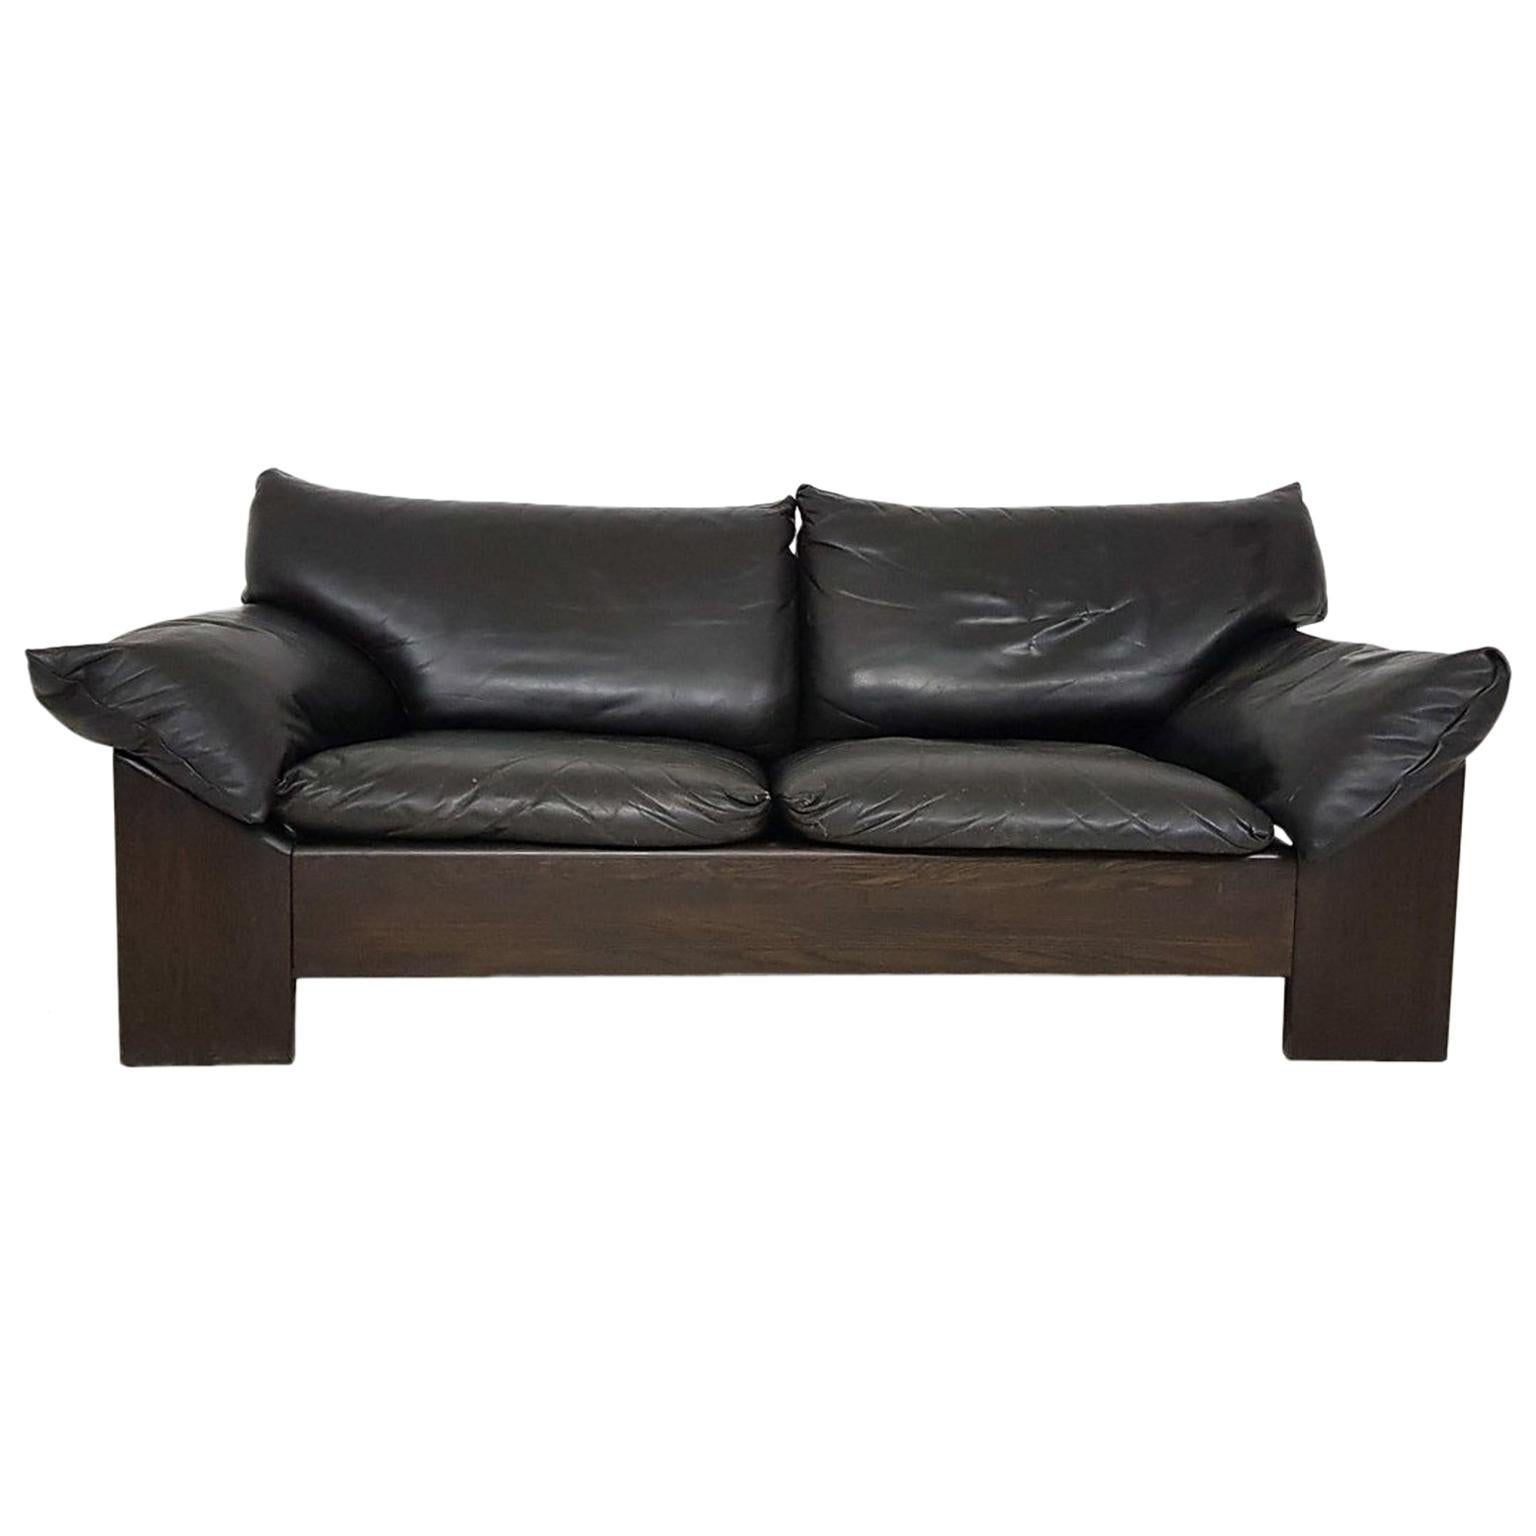 Brutalist Oak and Leather 2-Seat Sofa or Loveseat by Leolux, Dutch Design, 1970s